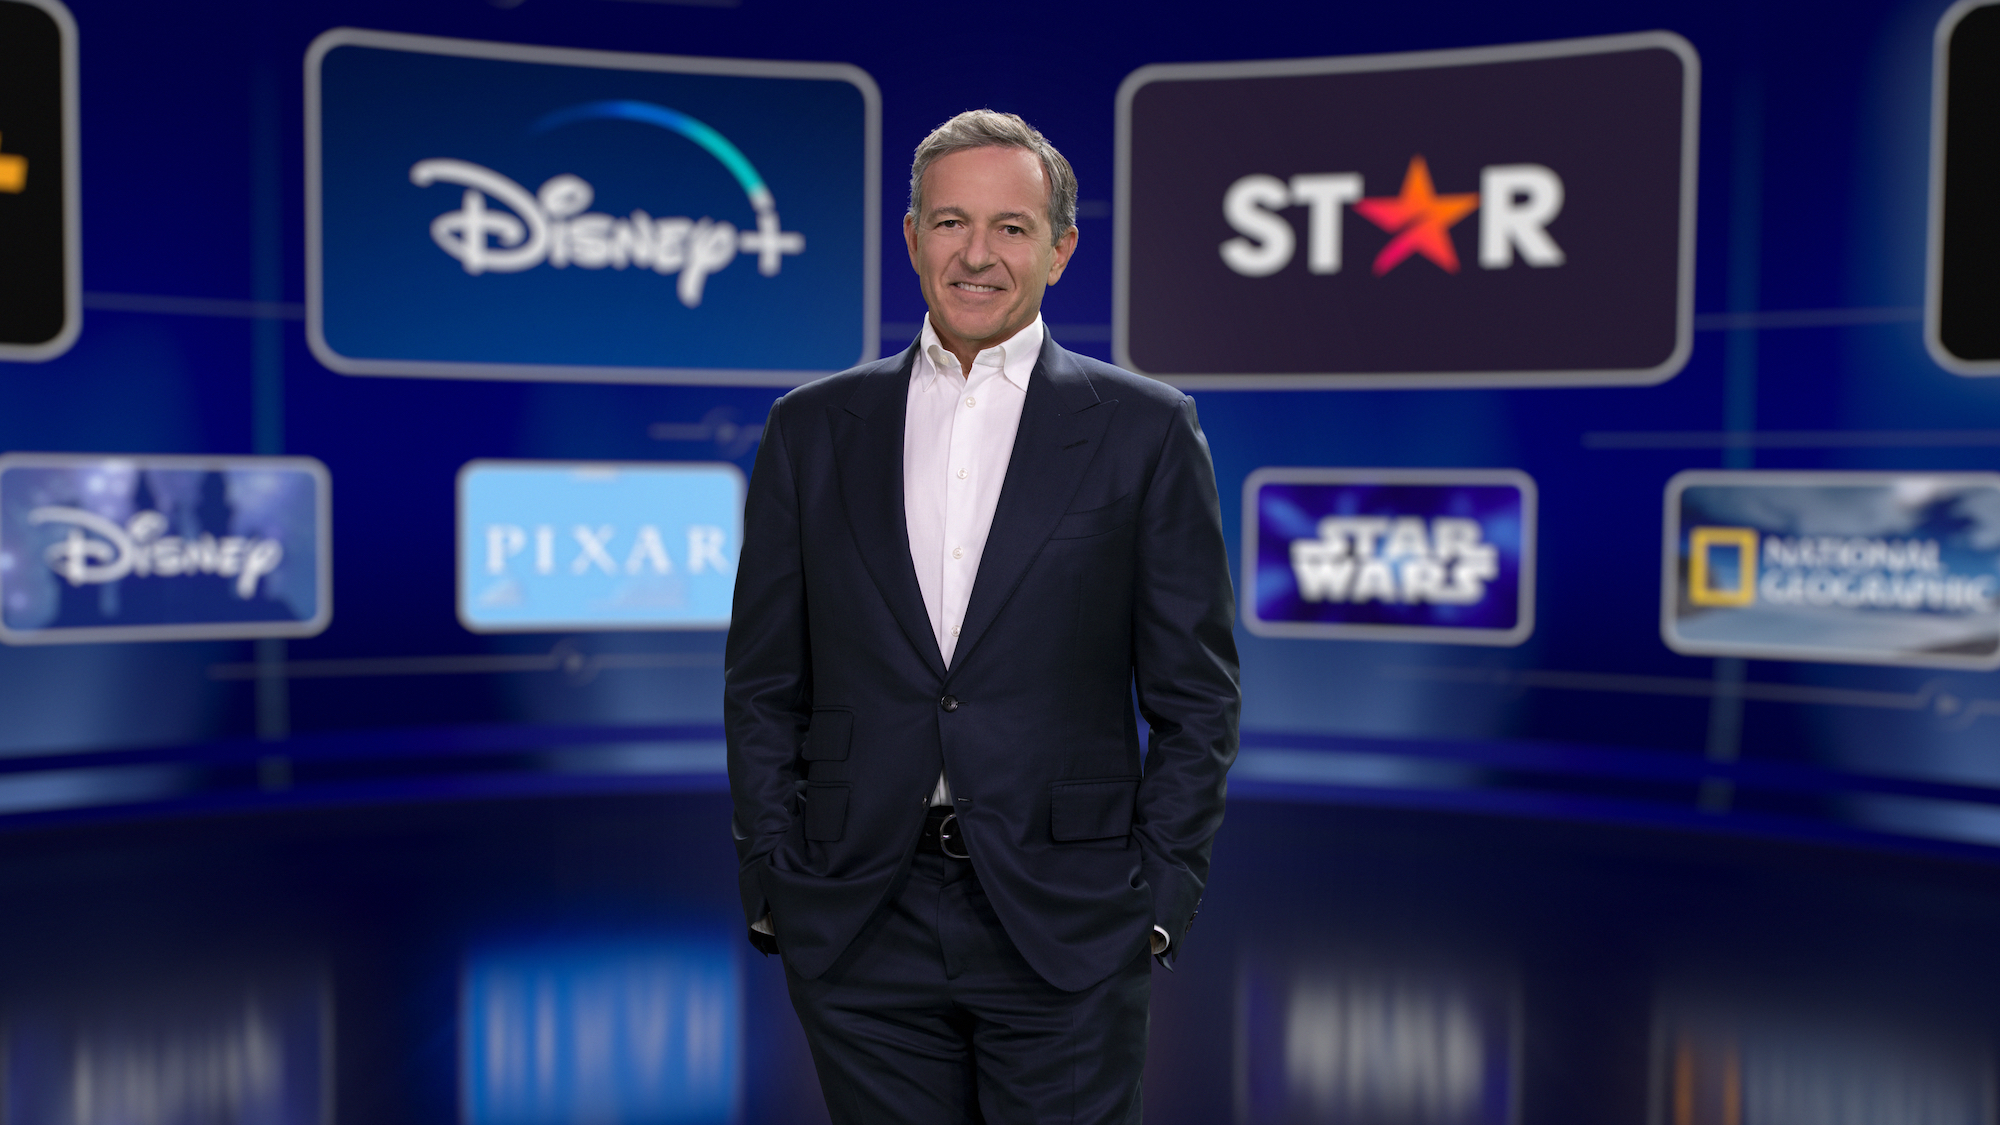 Disney's Robert Iger Praises New Democratic Presidential Team In Tweet